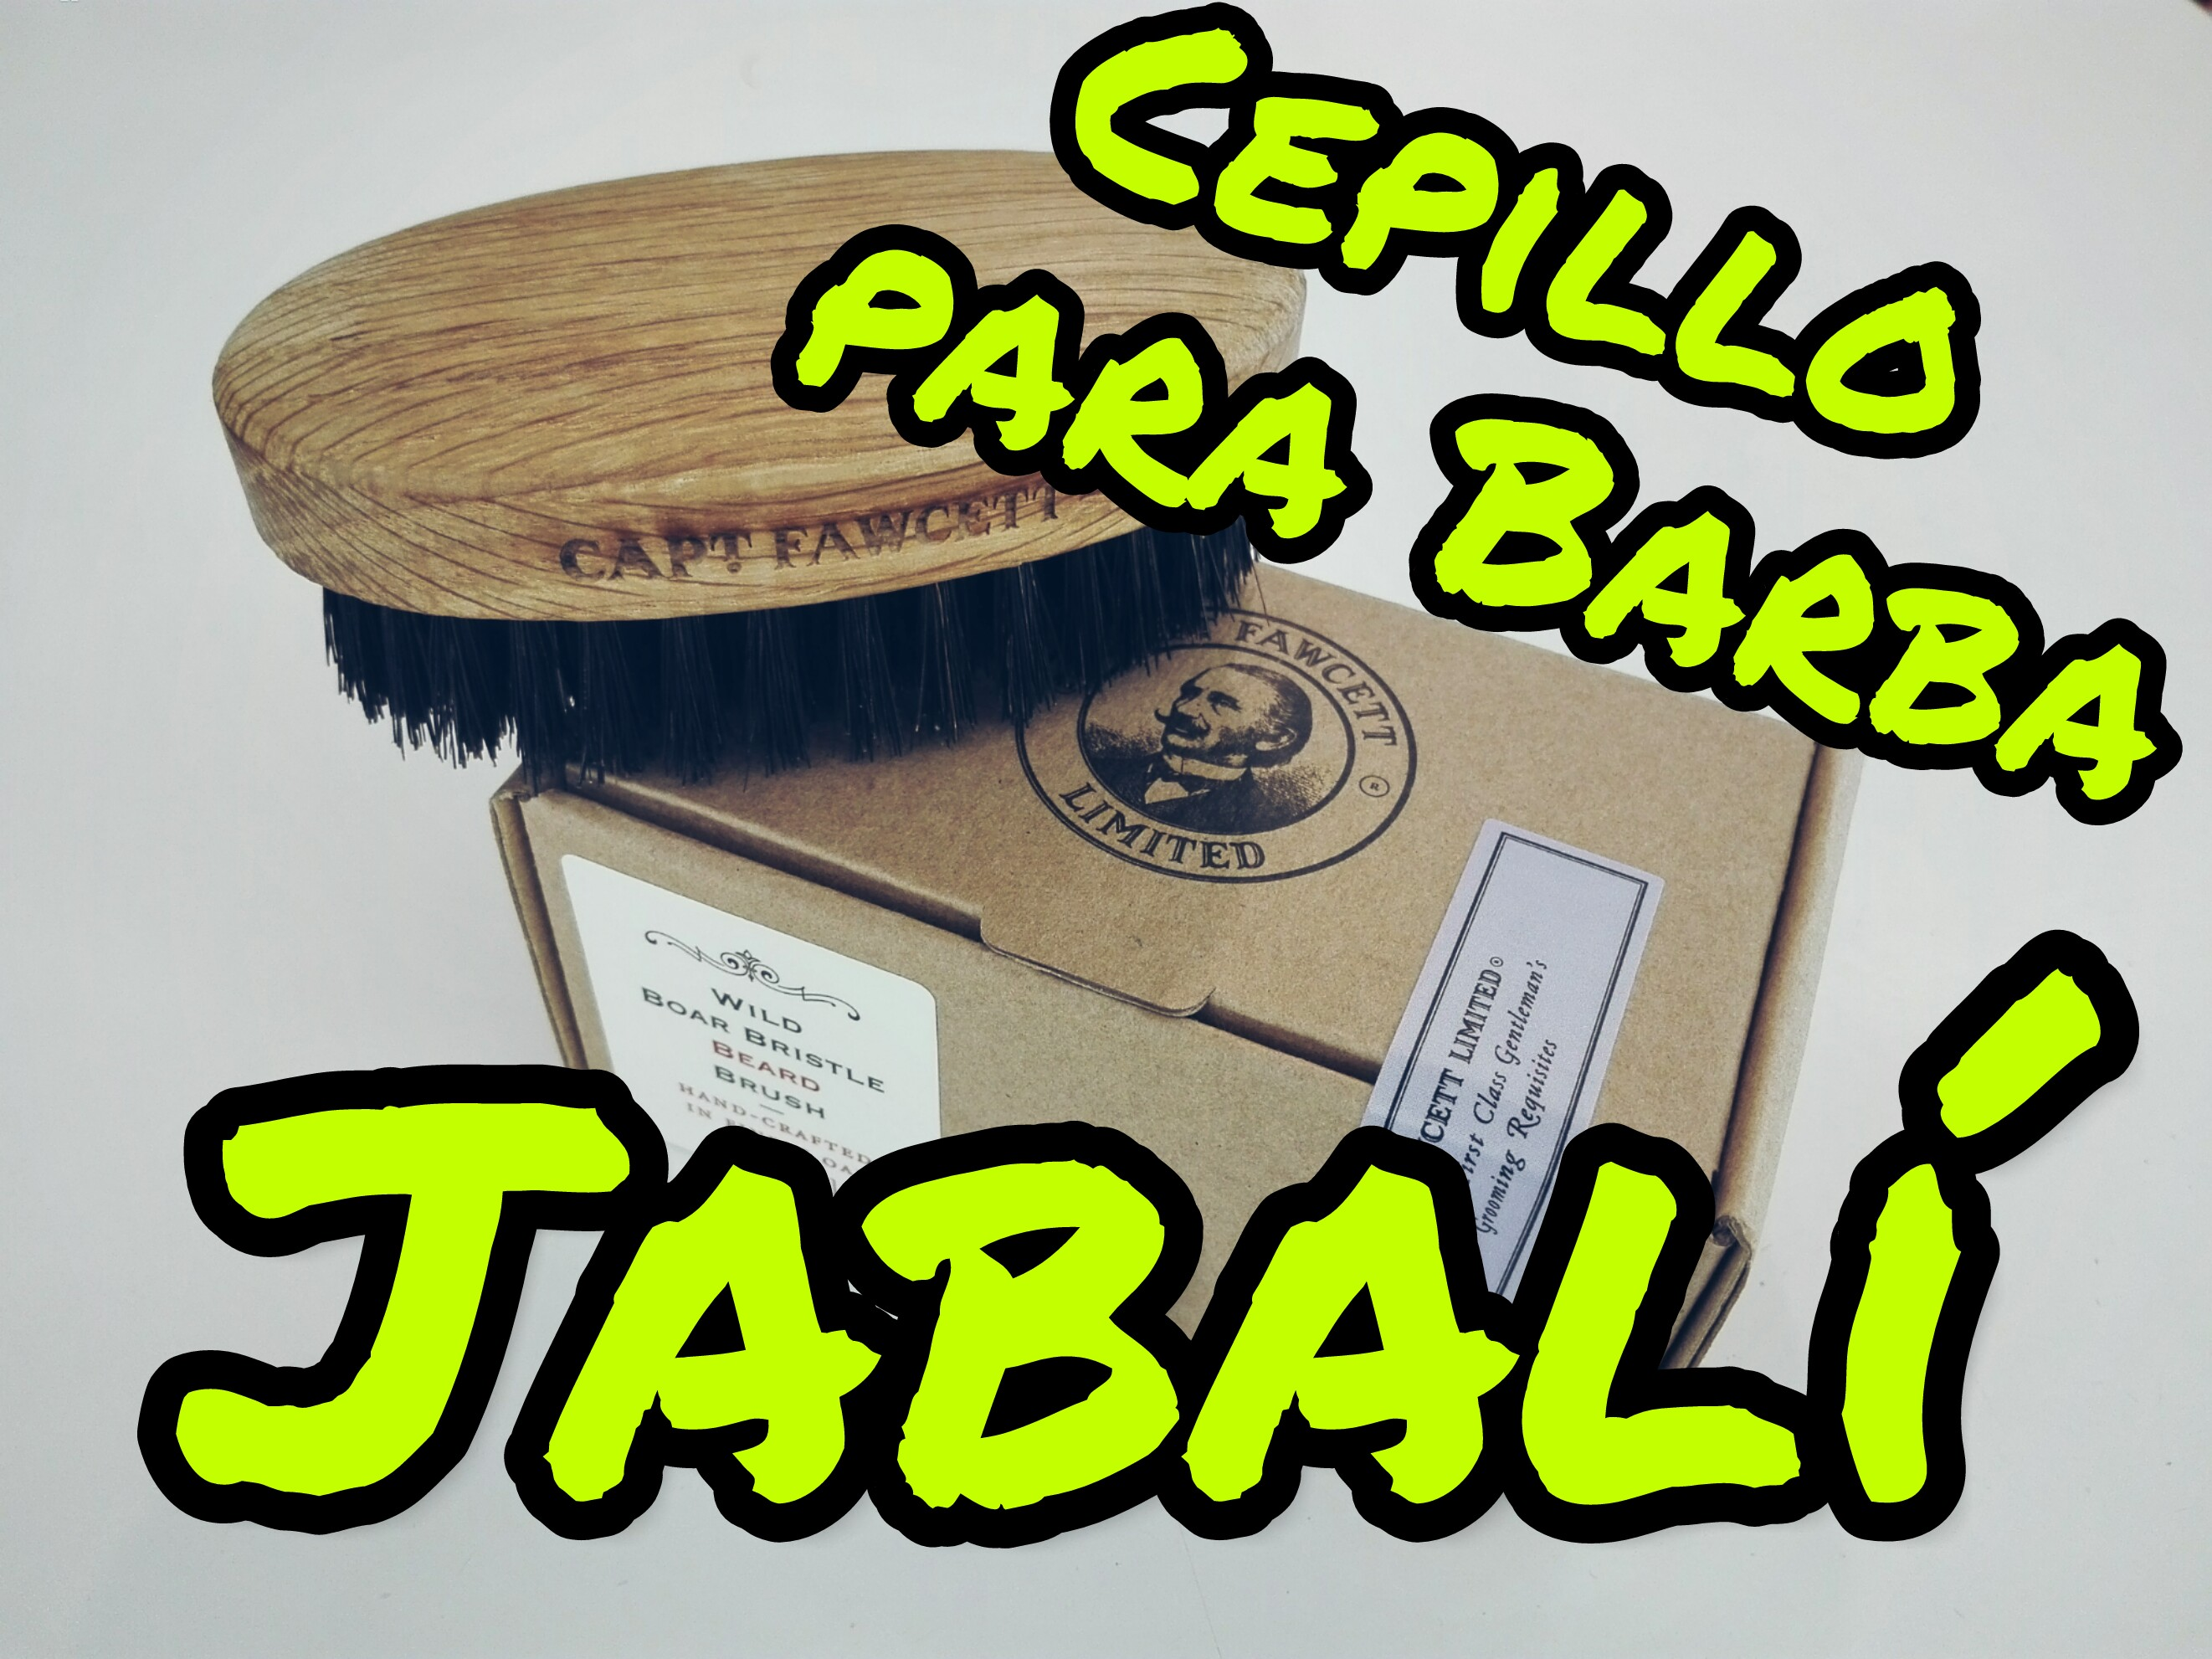 Unboxing Cepillo para barba Captain Fawcett Jabalí